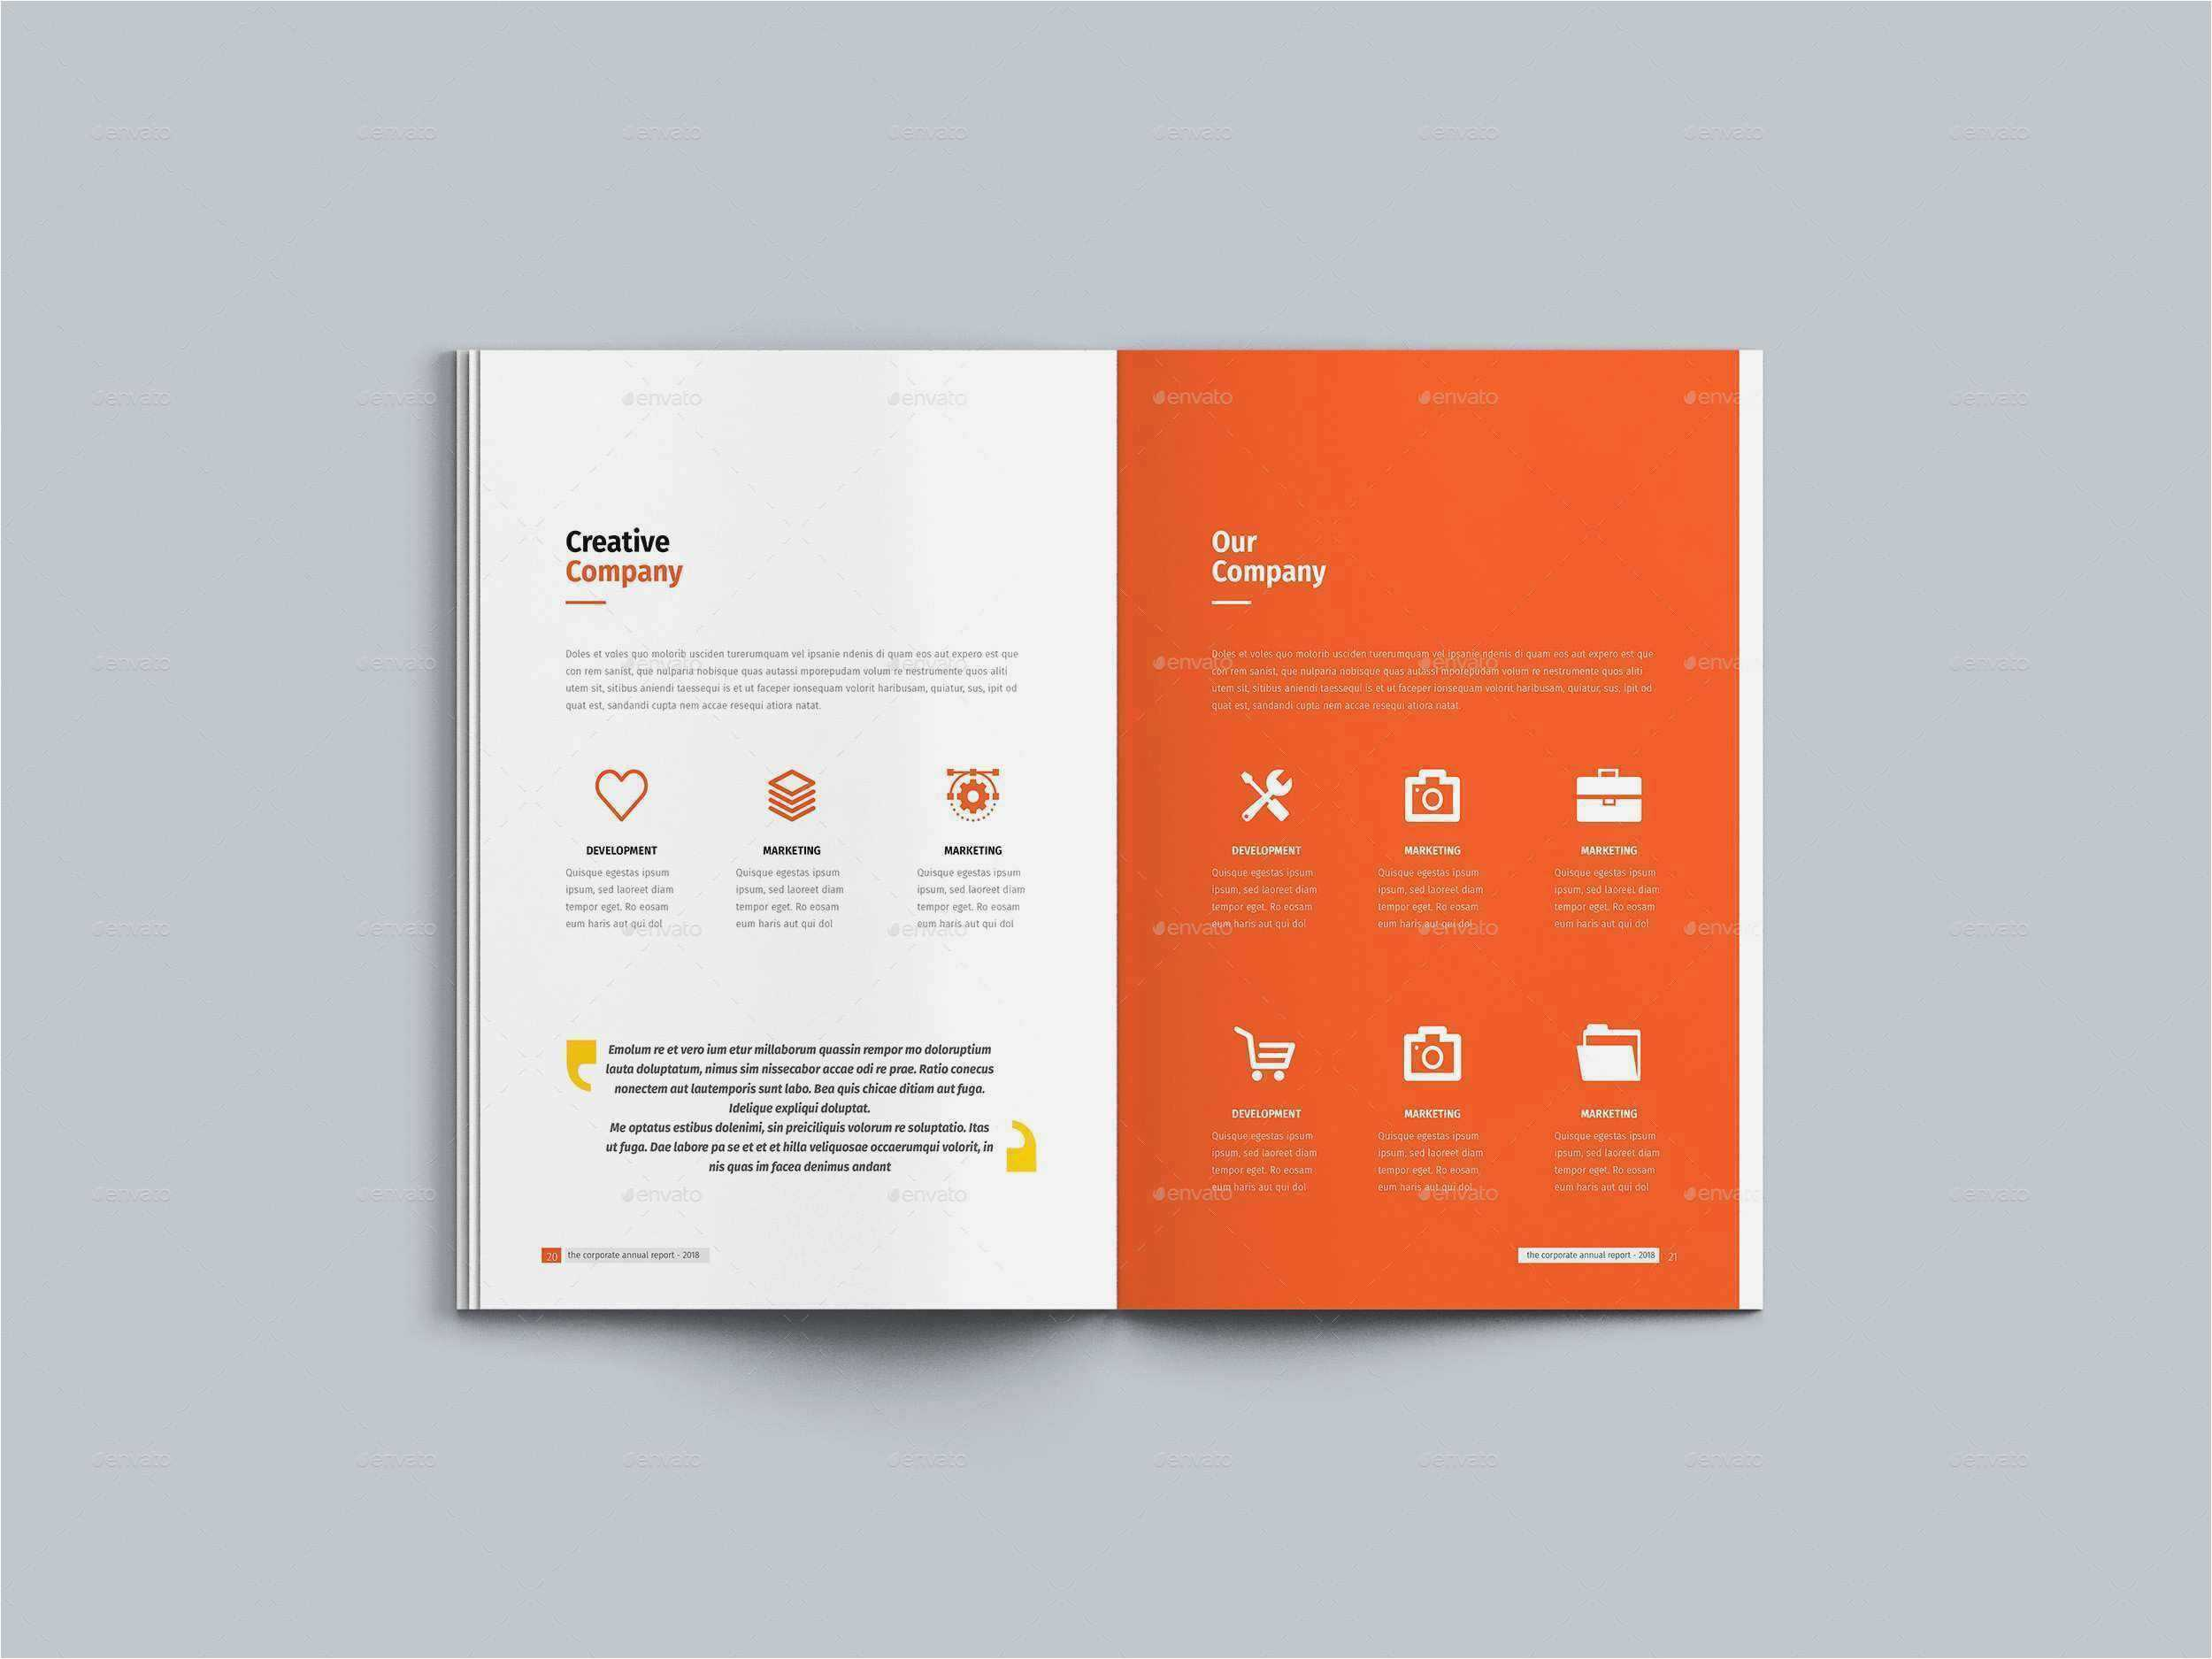 032 Free Collection Nonprofit Annual Report Template New pertaining to Nonprofit Annual Report Template